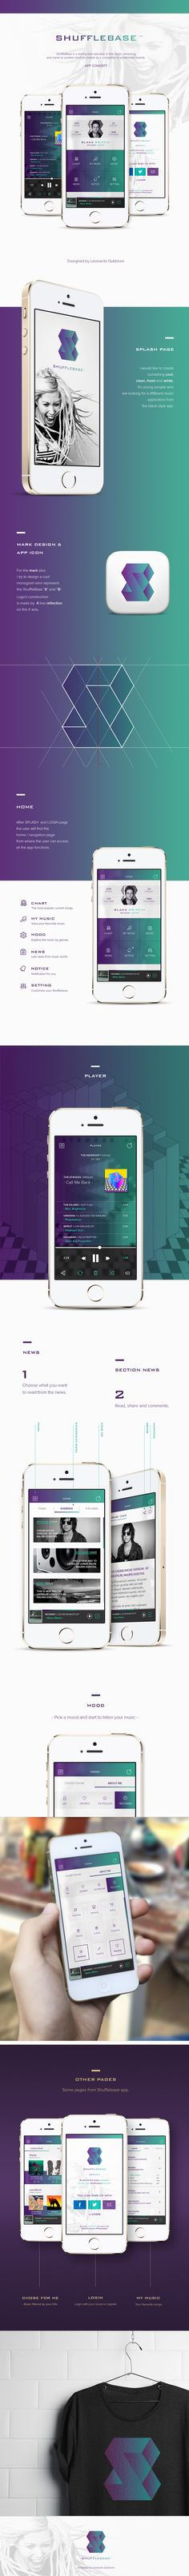 ShuffleBase is a startup that operates in music streaming and wants to position itself on market as a competitor to established brands. Mobile Web Design, App Ui Design, Interface Design, Flat Design, Interface App, App Promotion, App Login, Software, Music App